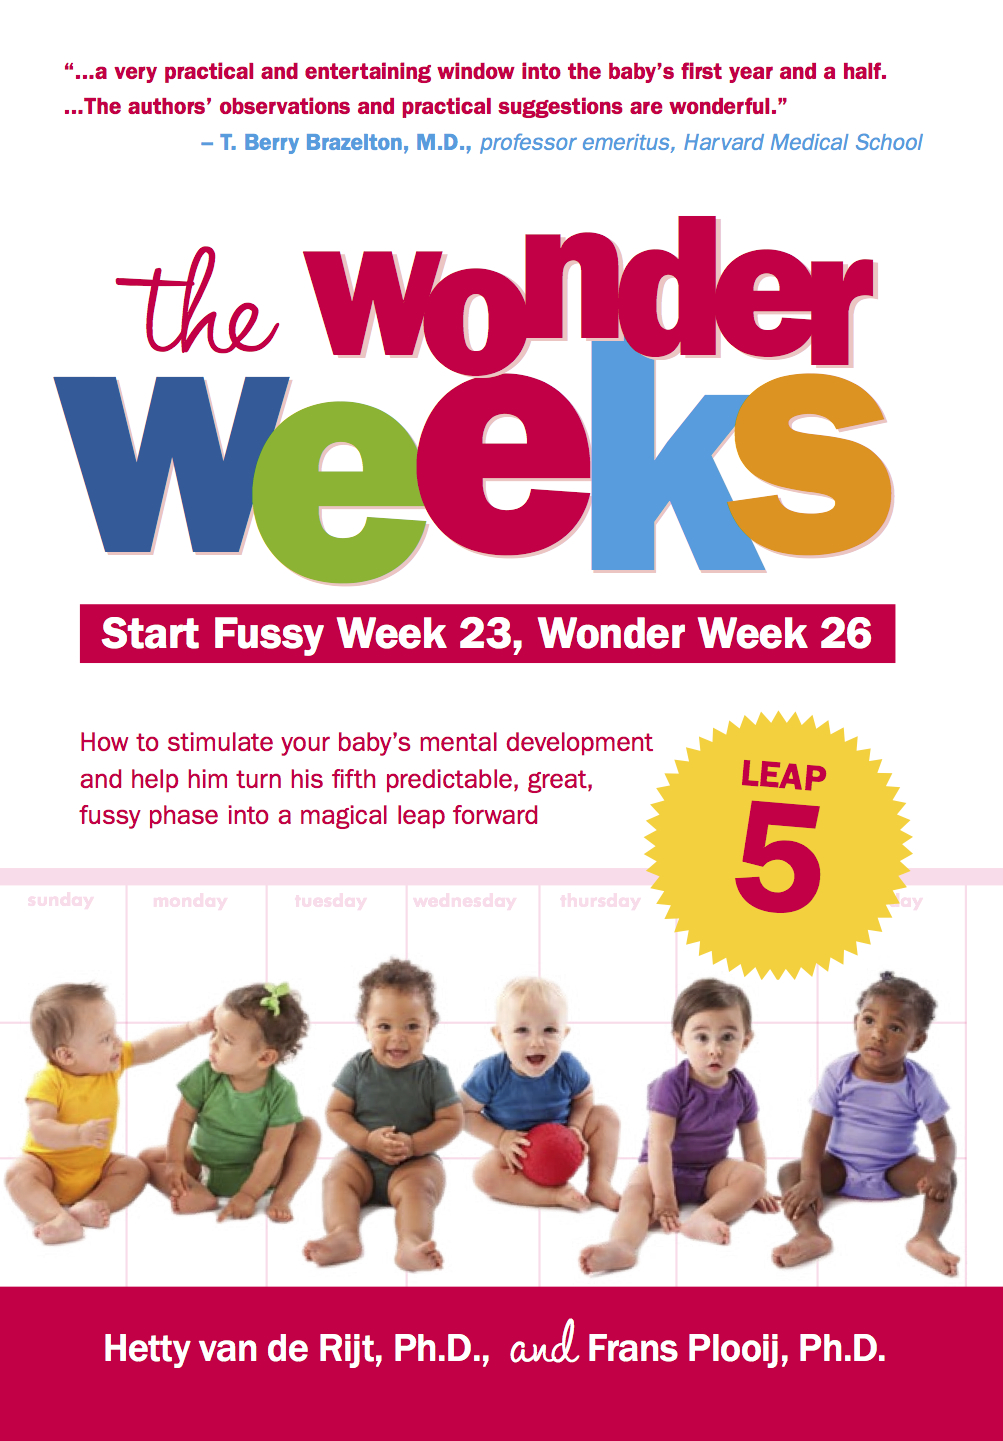 The Wonder Weeks, Leap 5